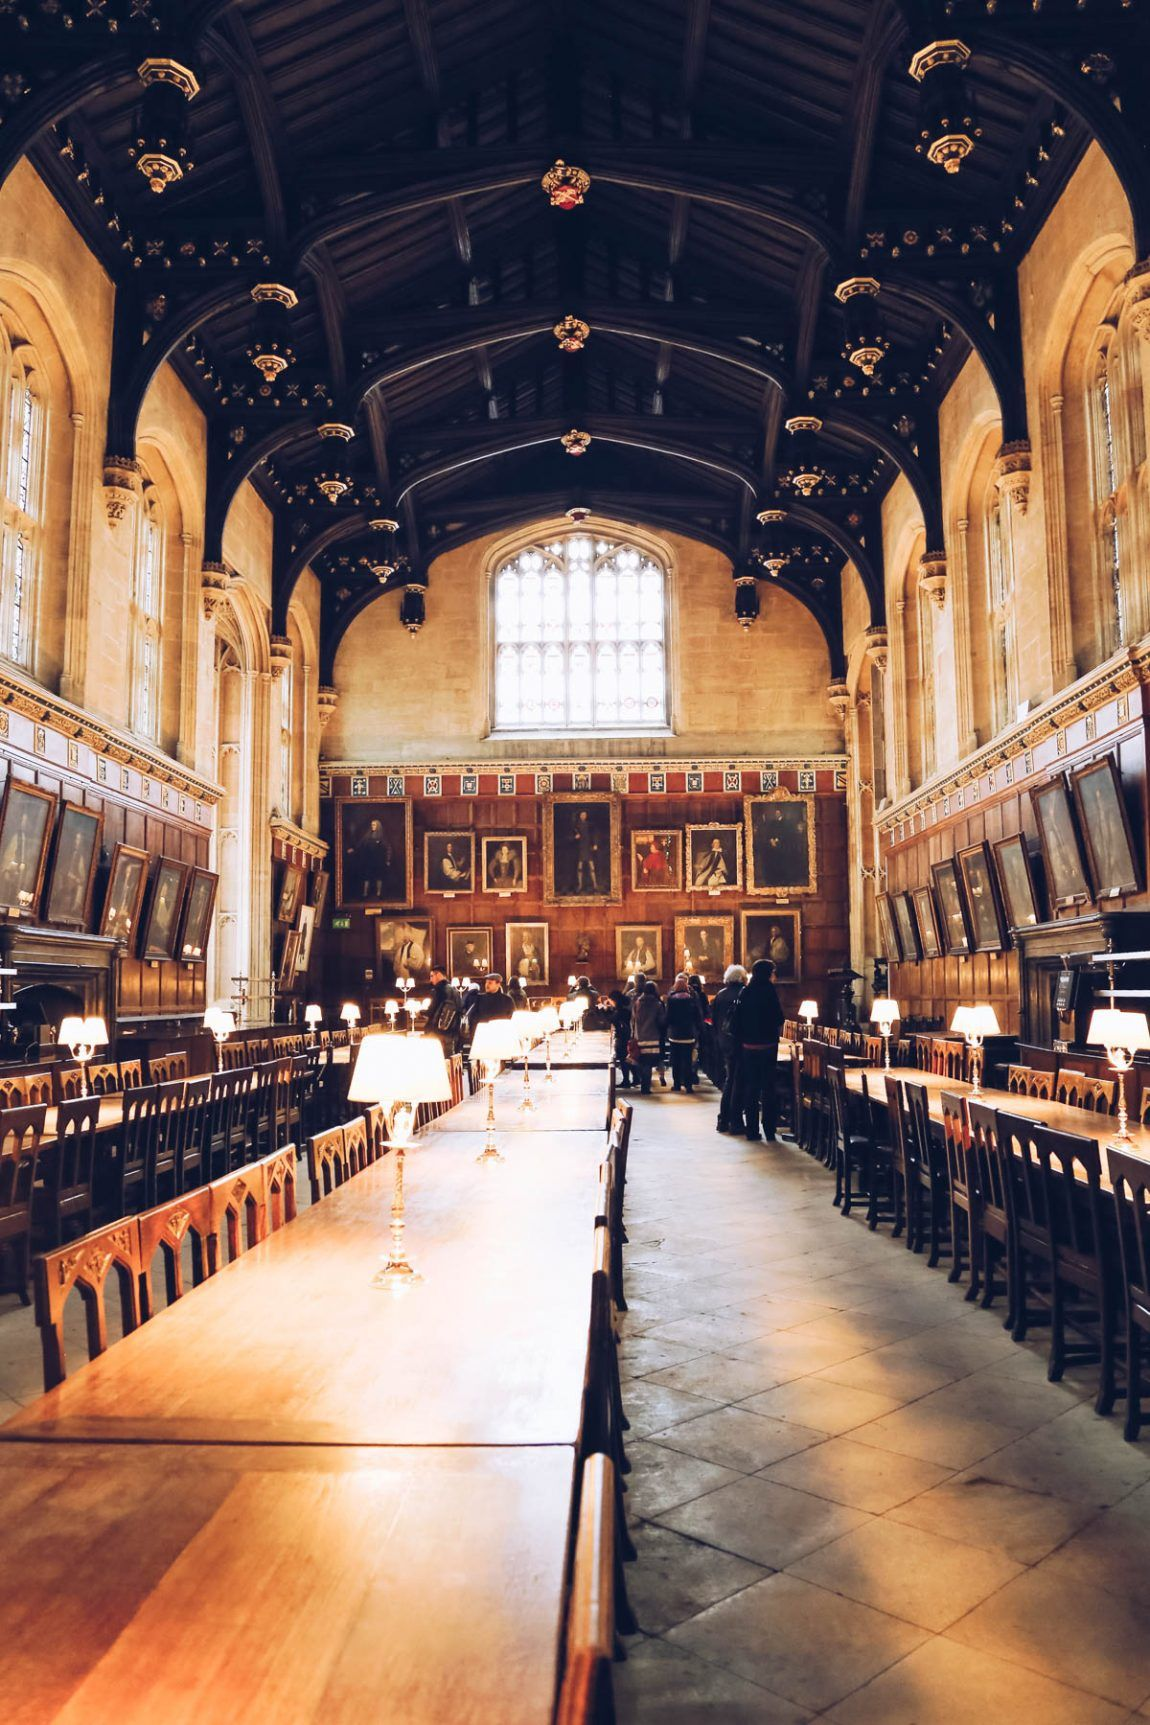 A Muggle S Guide To Harry Potter Filming Locations In Oxford The Wanderblogger Harry Potter Filming Locations Filming Locations Harry Potter